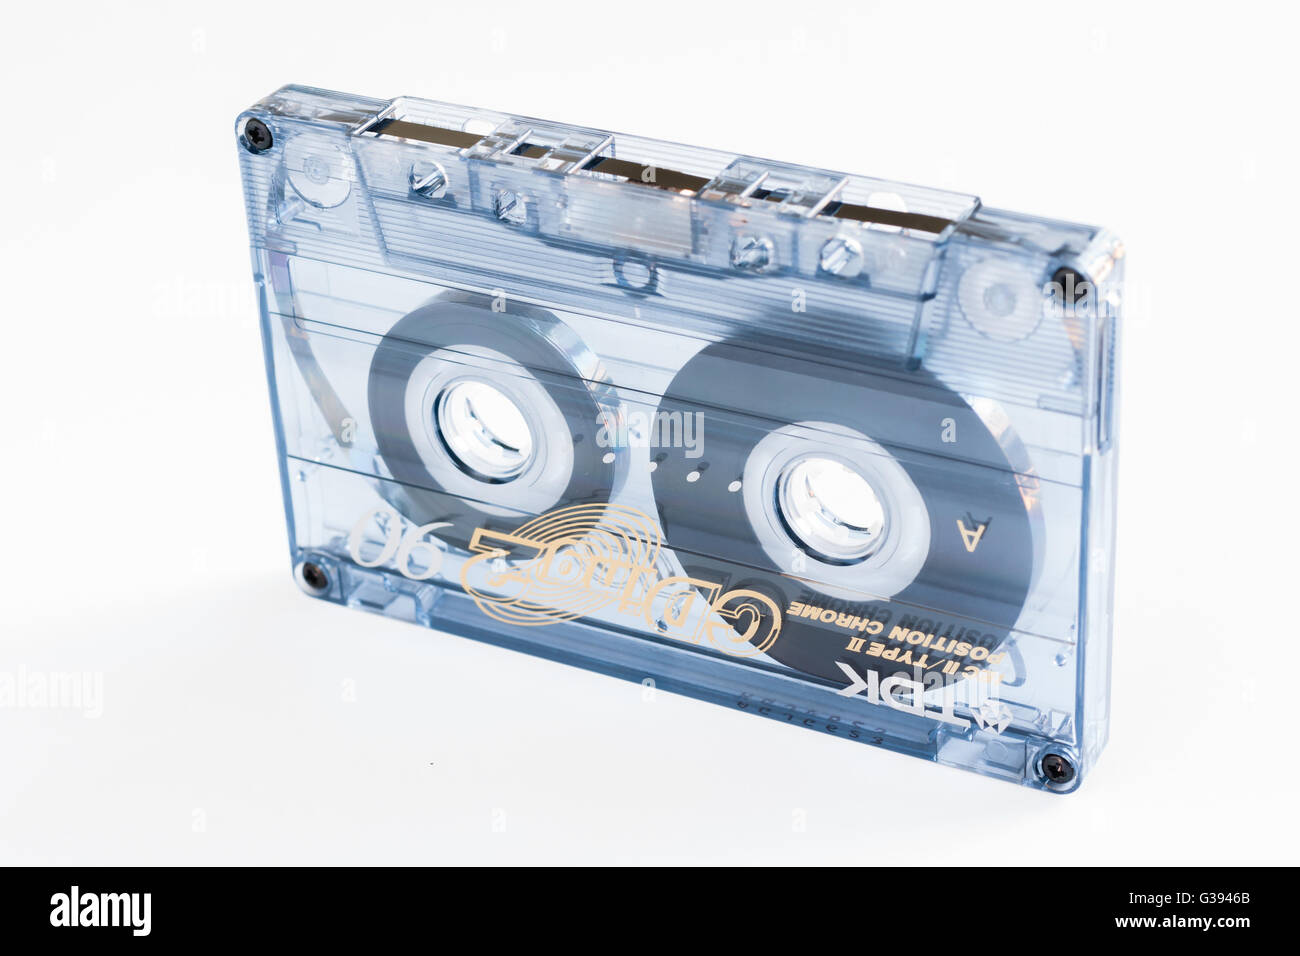 Cassette tape a magnetic tape recording format for audio recording and playback made by TDK in the 1980s - Stock Image